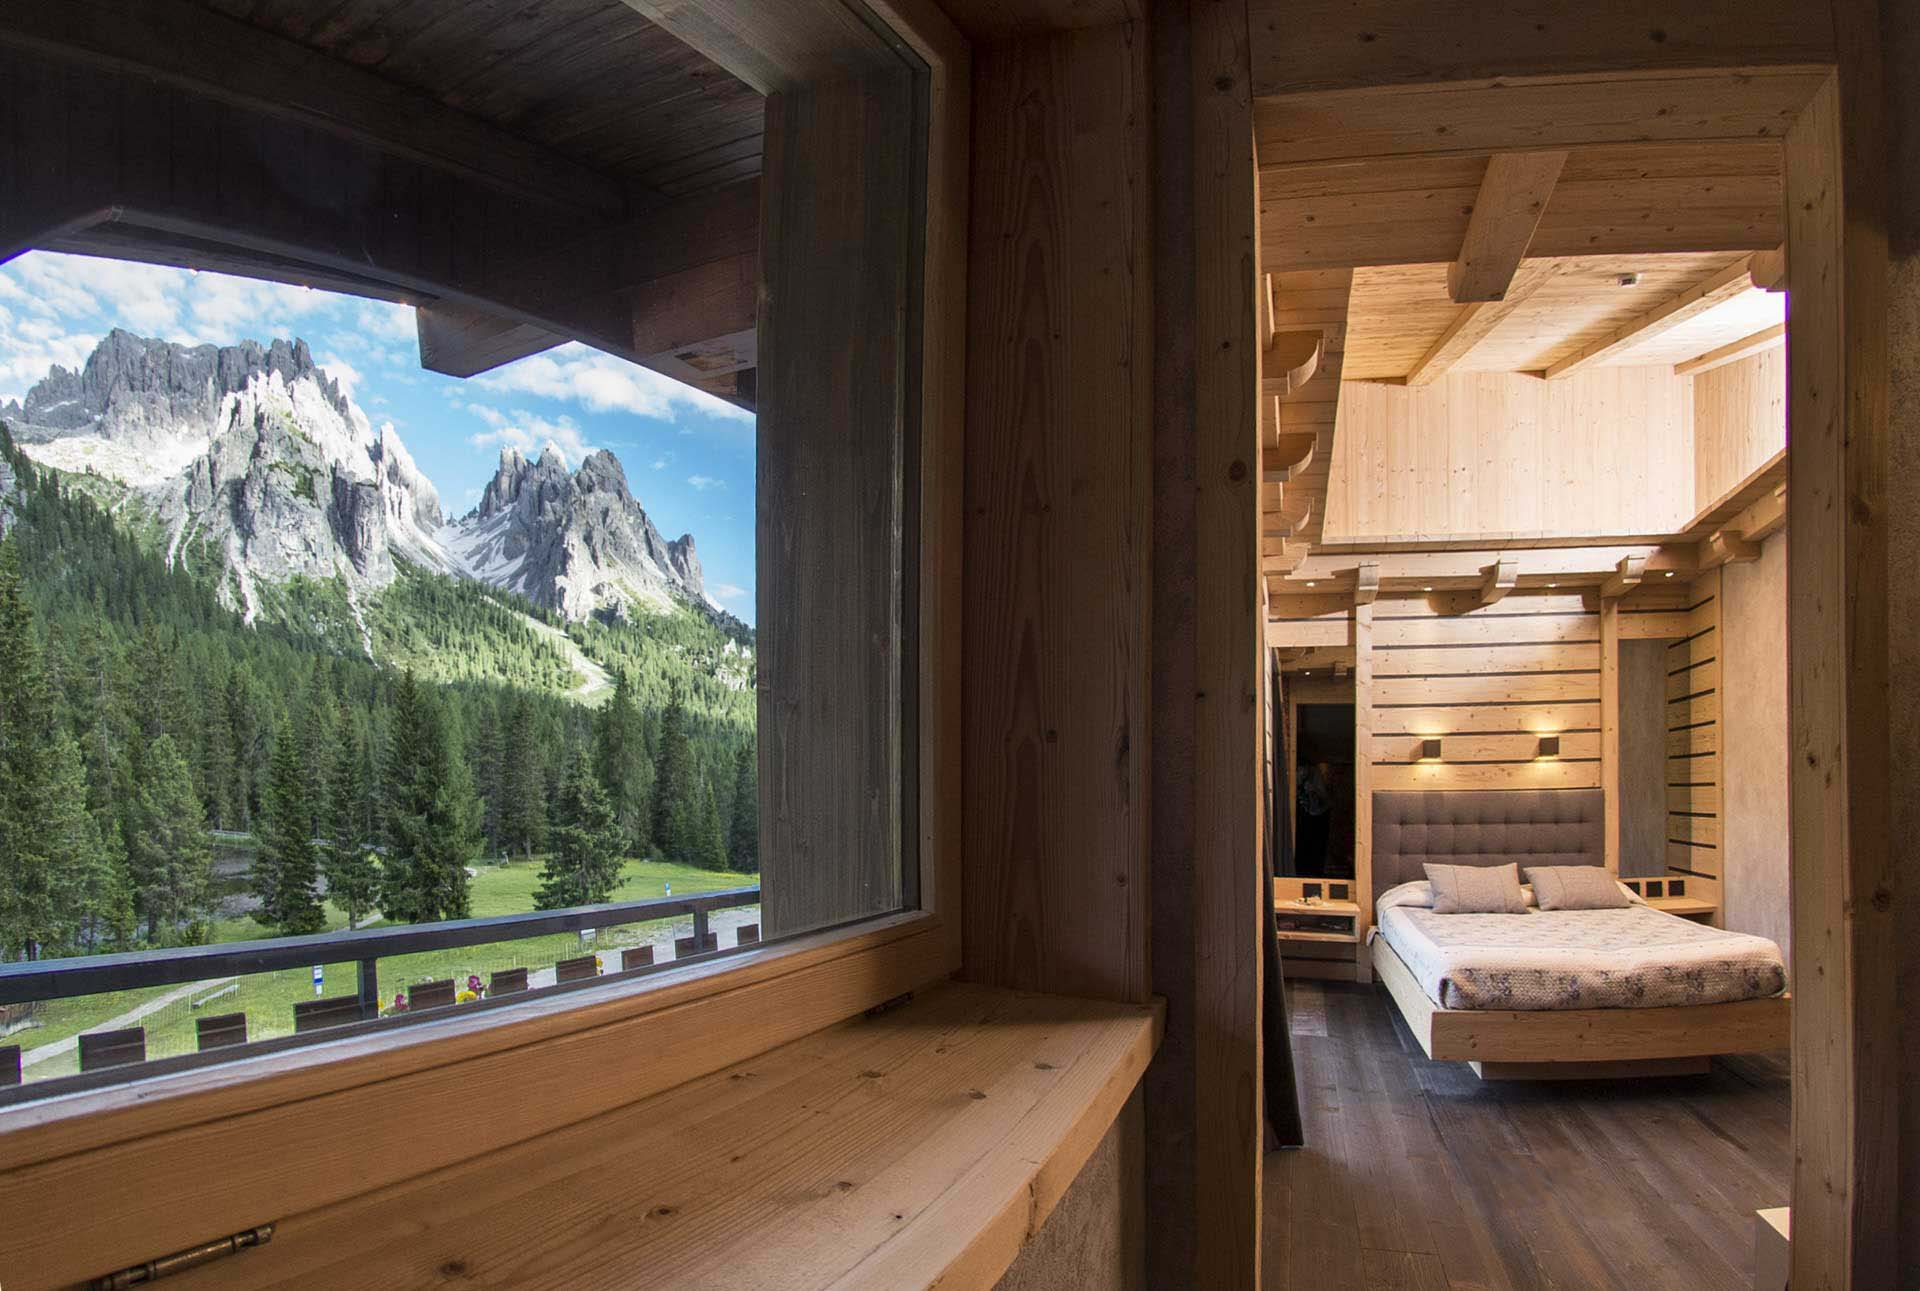 Chalet Lago Antorno Rooms